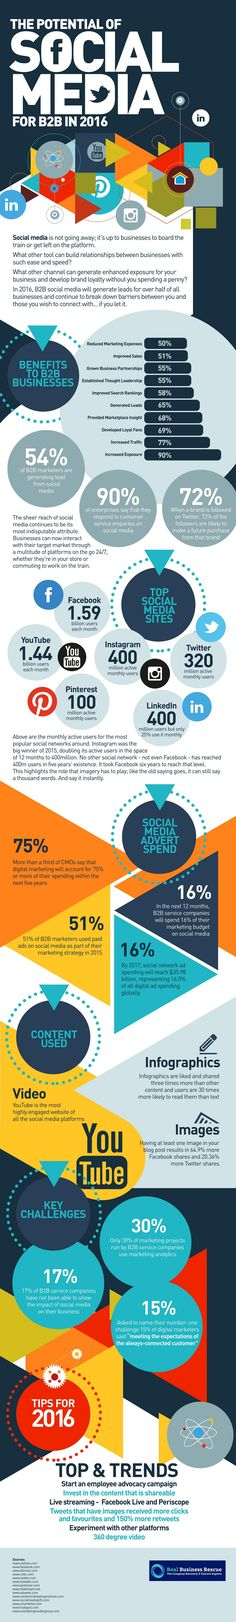 The Potential of Social Media for B2B in 2016 #infographic